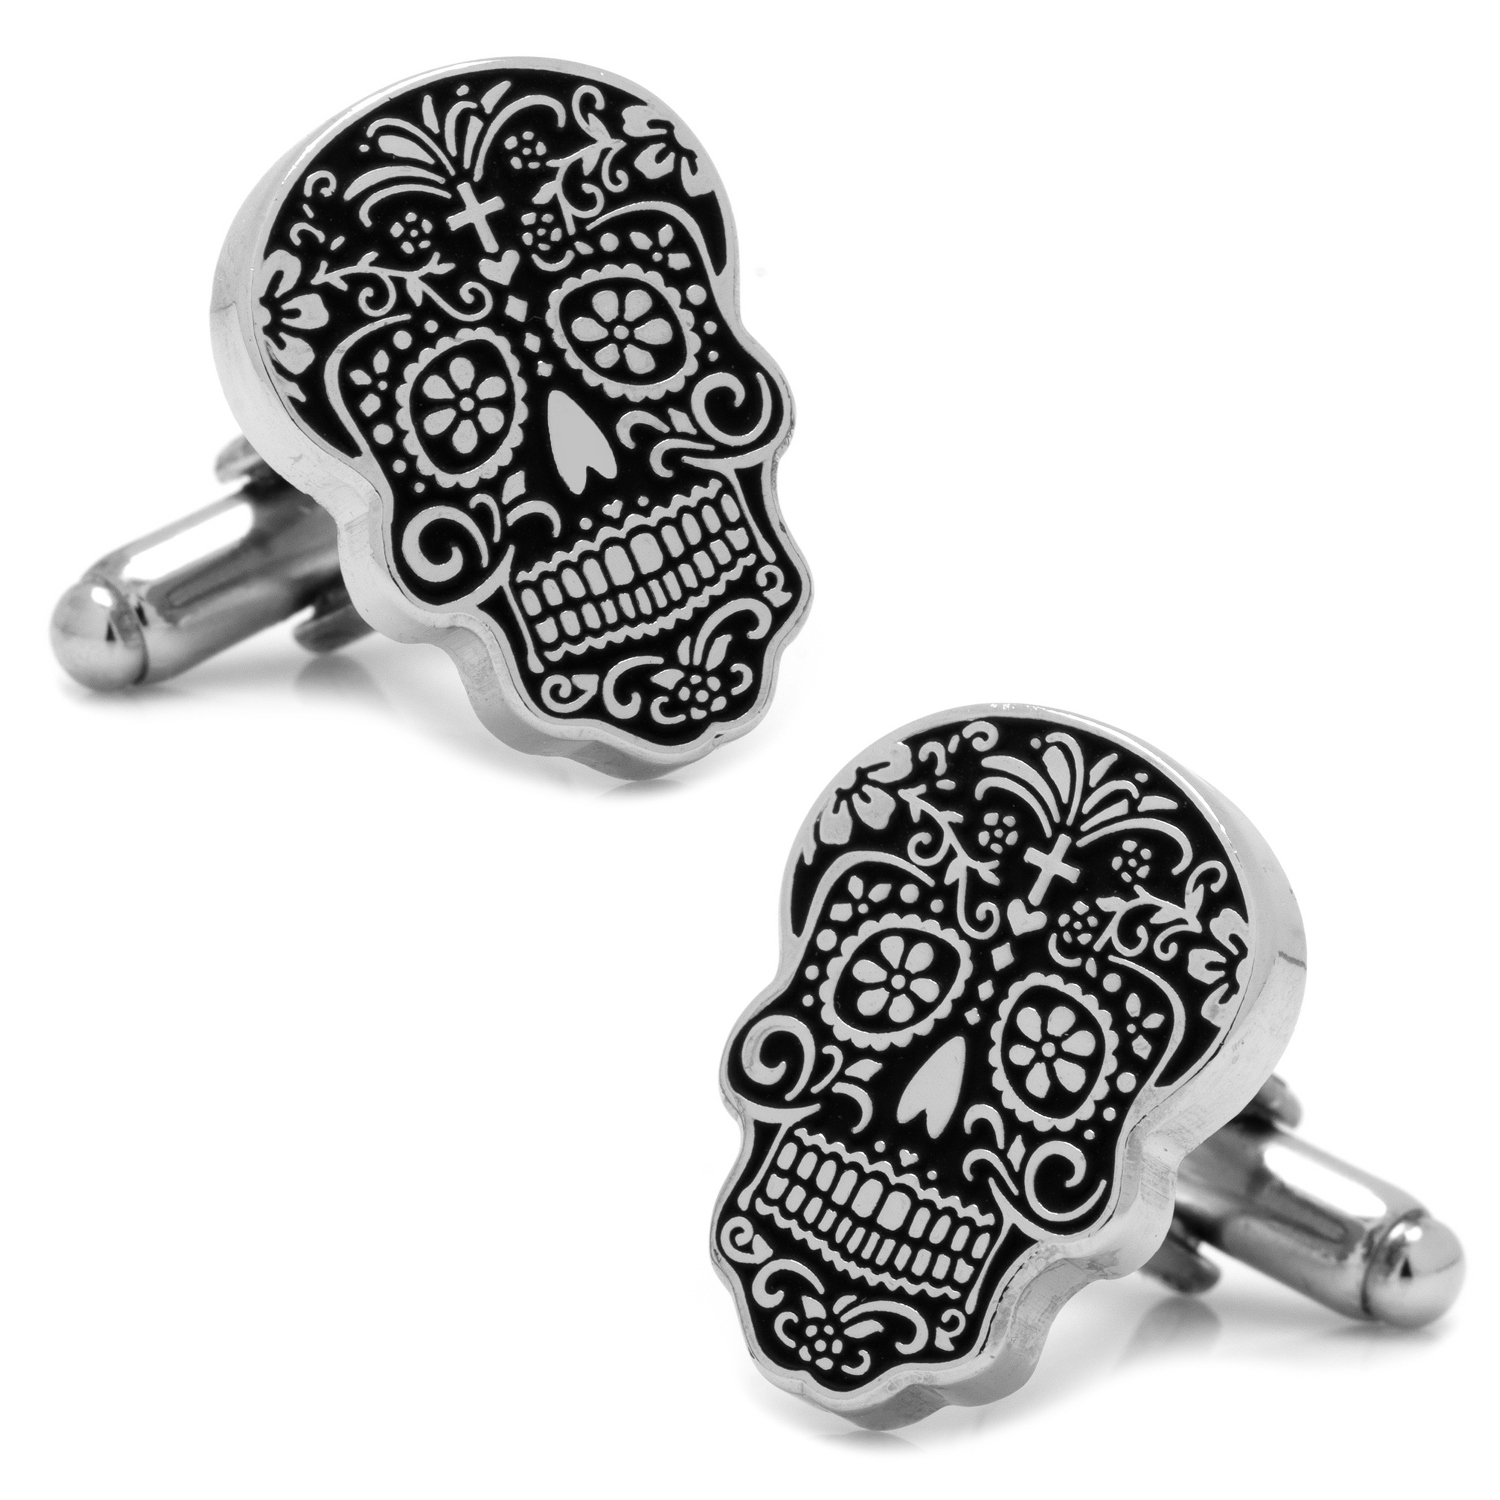 Day of the Dead Silver Tone Cuff Links